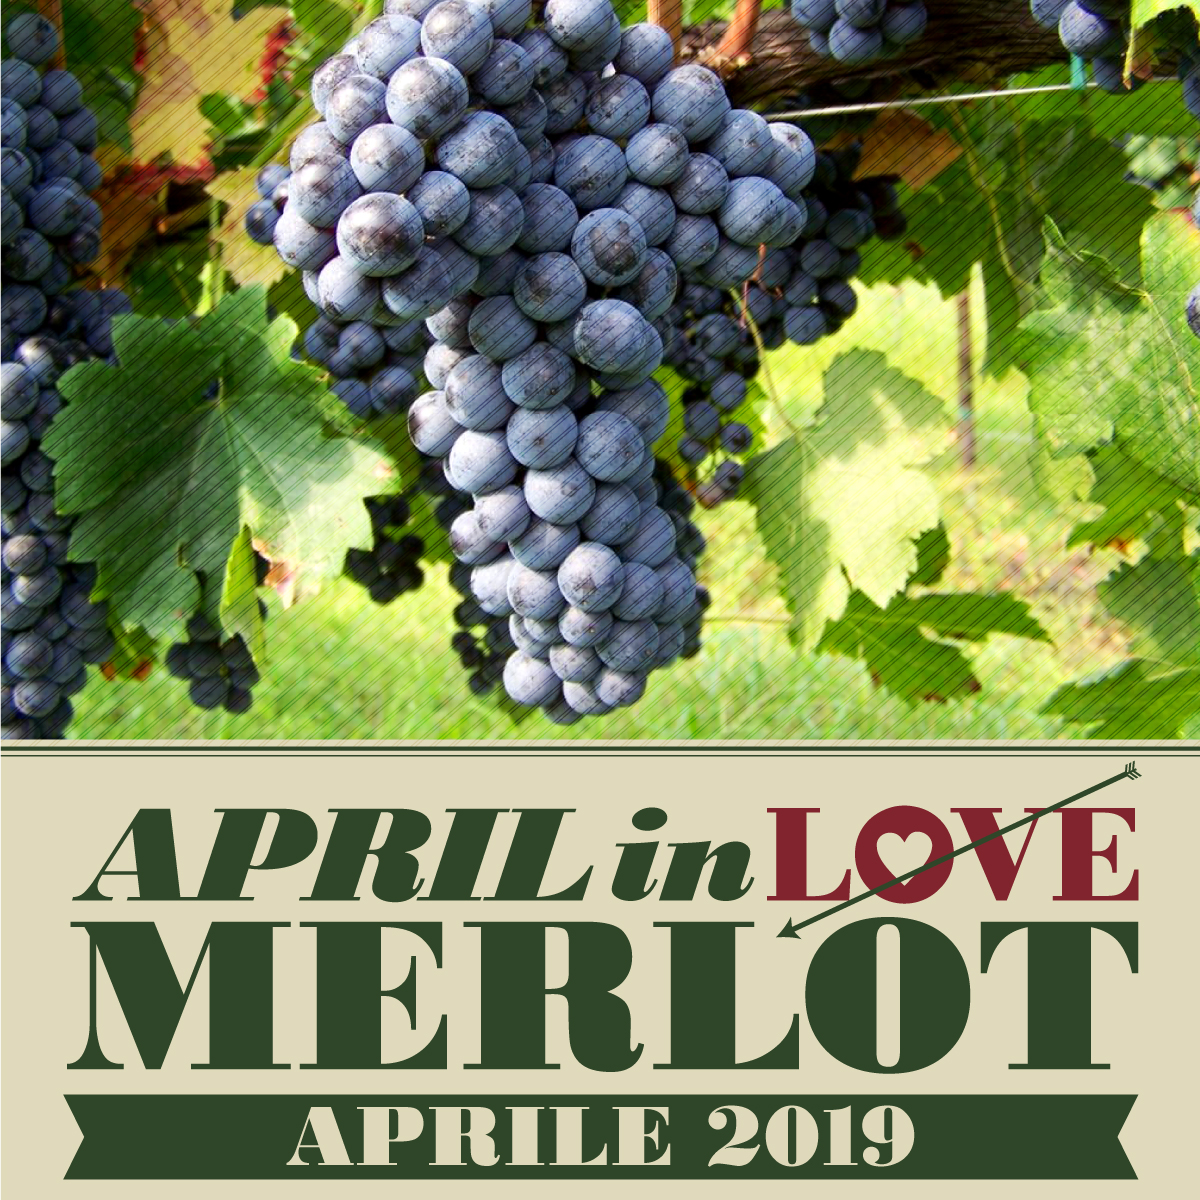 APRIL IN LOVE MERLOT